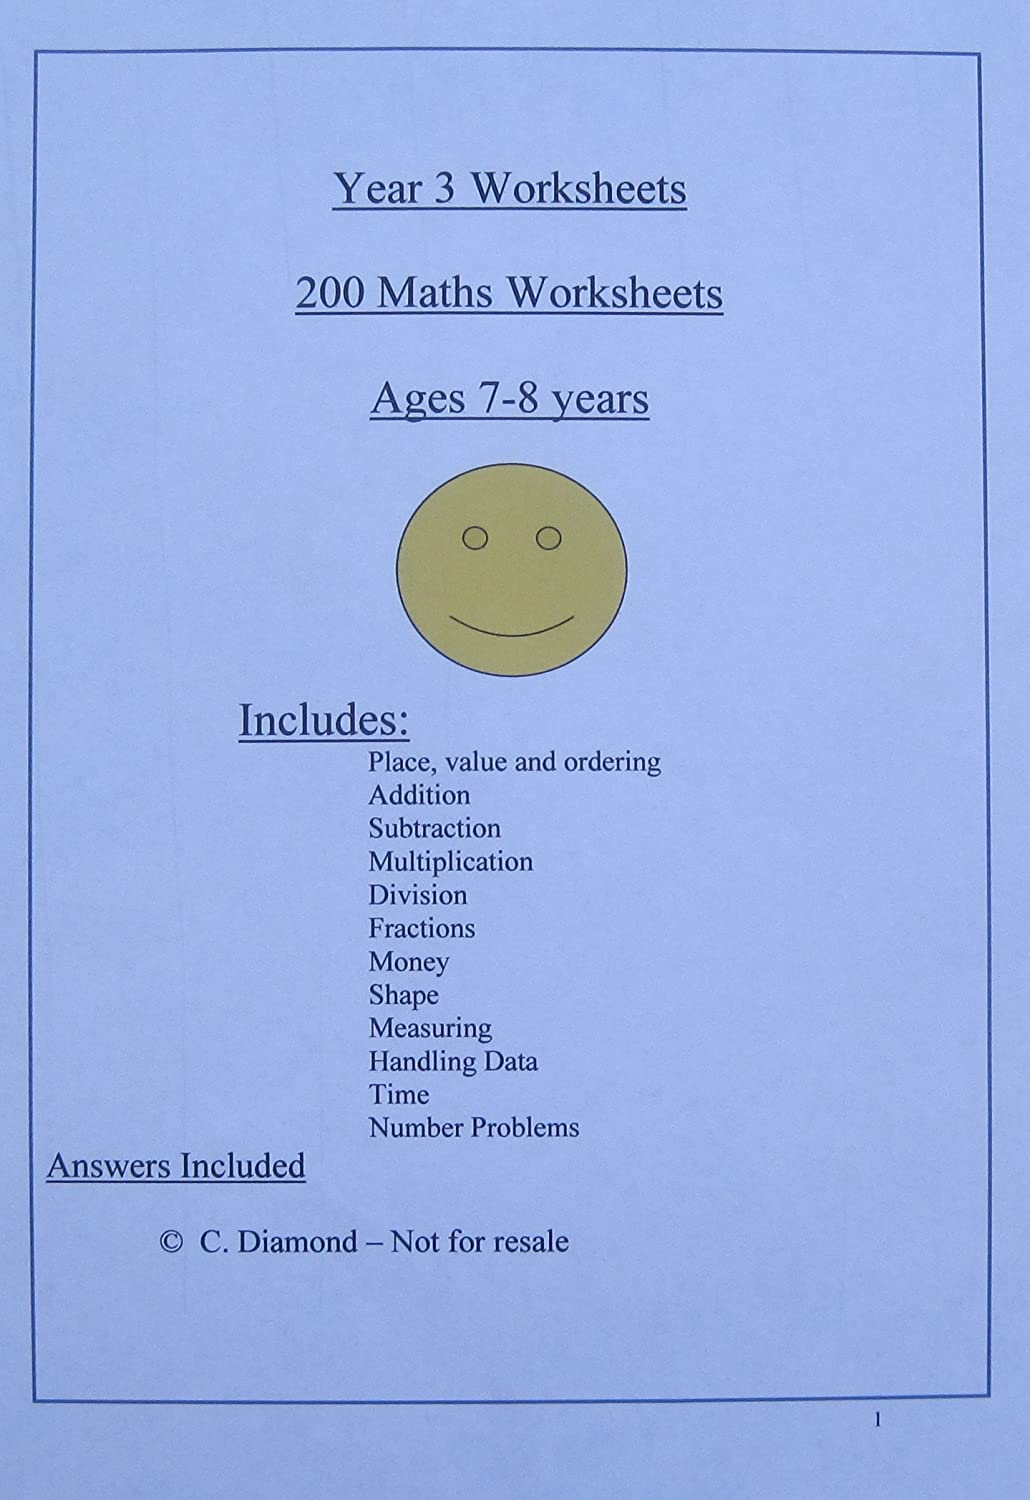 200 Year 5 Maths Worksheets KS2 pdf file to print out Amazonco – Key Stage 2 Maths Worksheets to Print